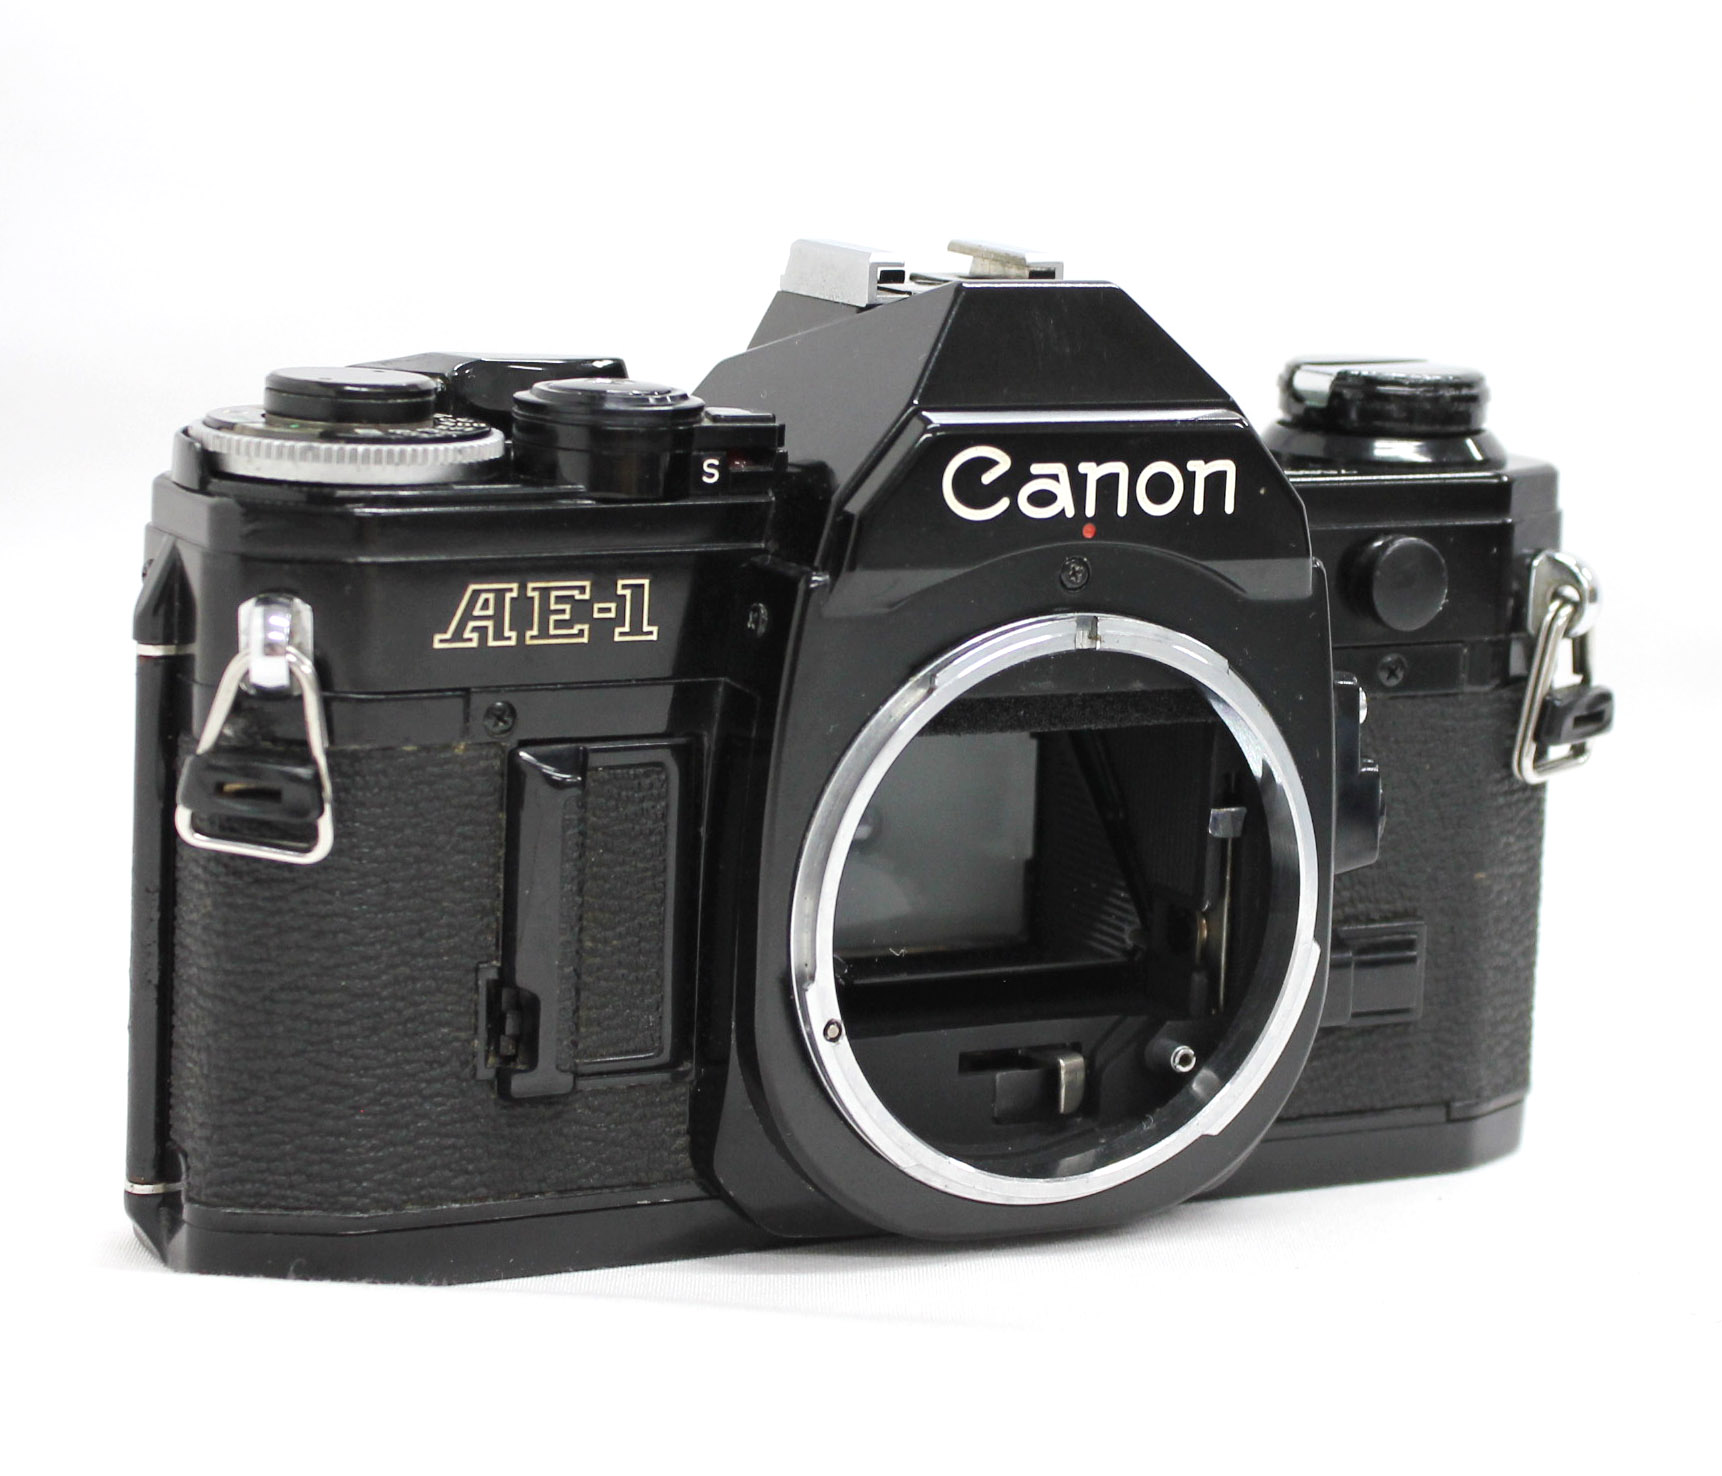 Canon AE-1 35mm SLR Film Camera Black with New FD 35-70mm F/3.5-4.5 Bonus Lens from Japan Photo 2